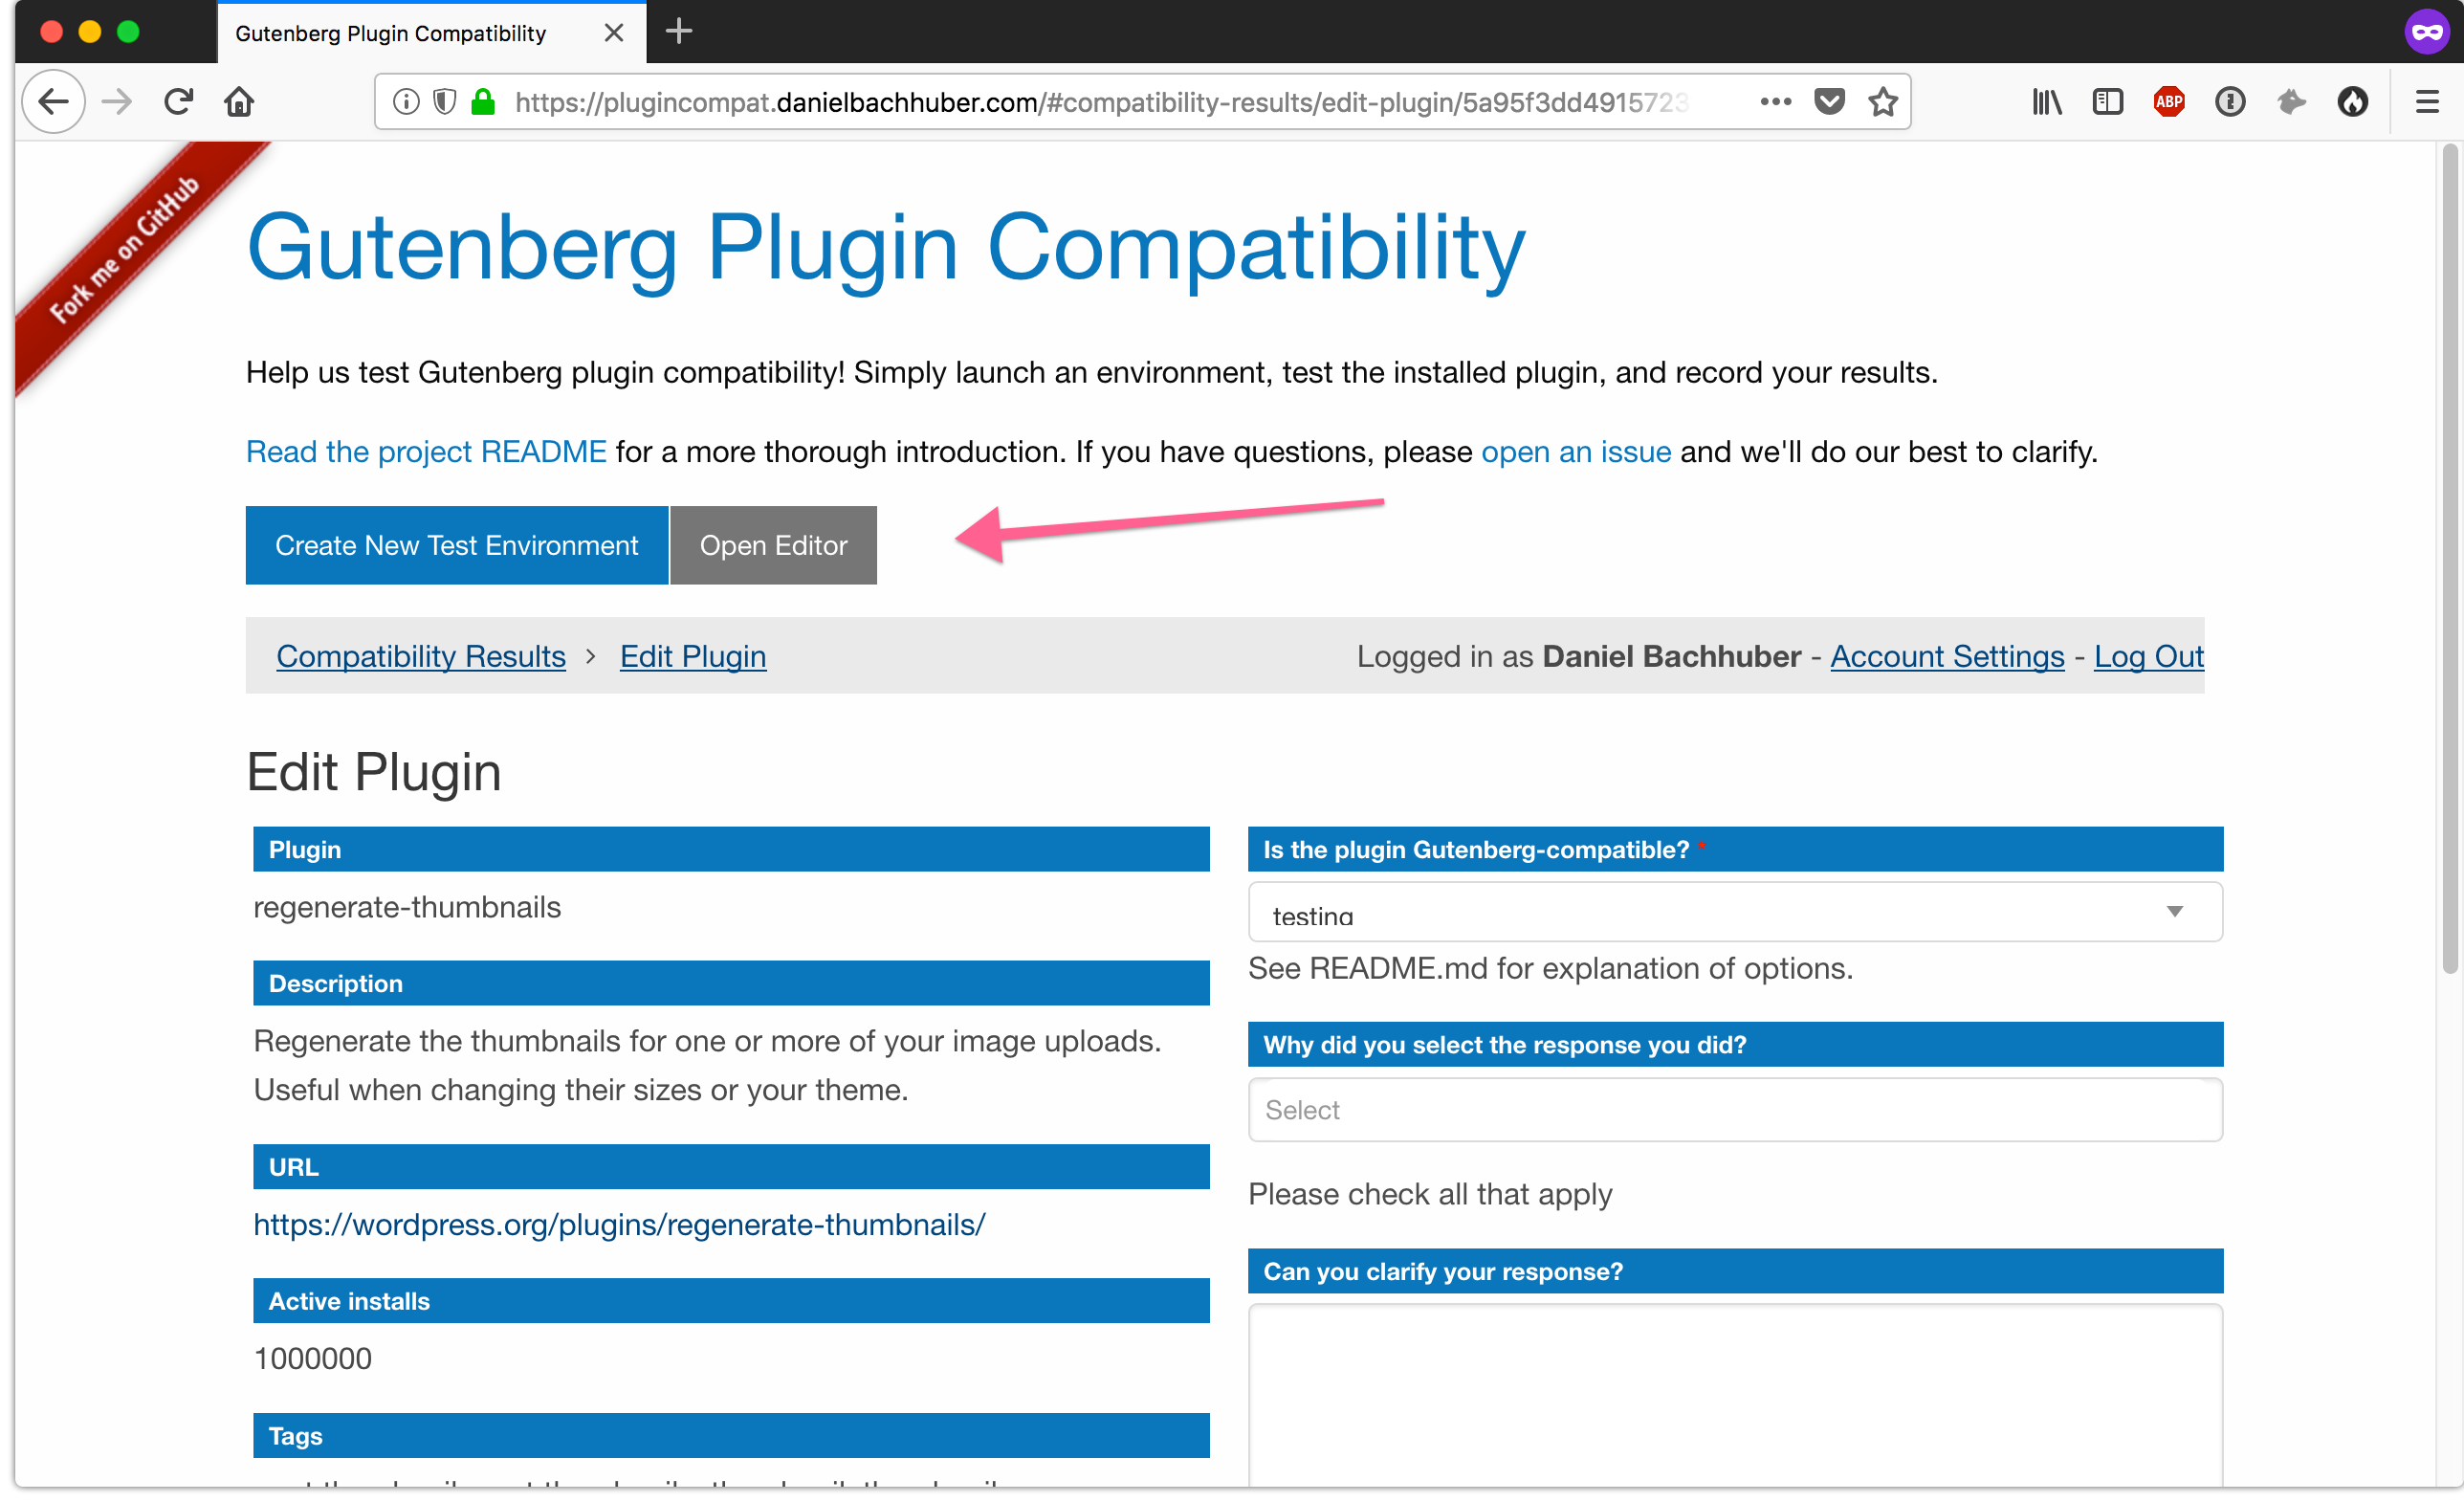 gutenberg-plugin-compatibility/README md at master